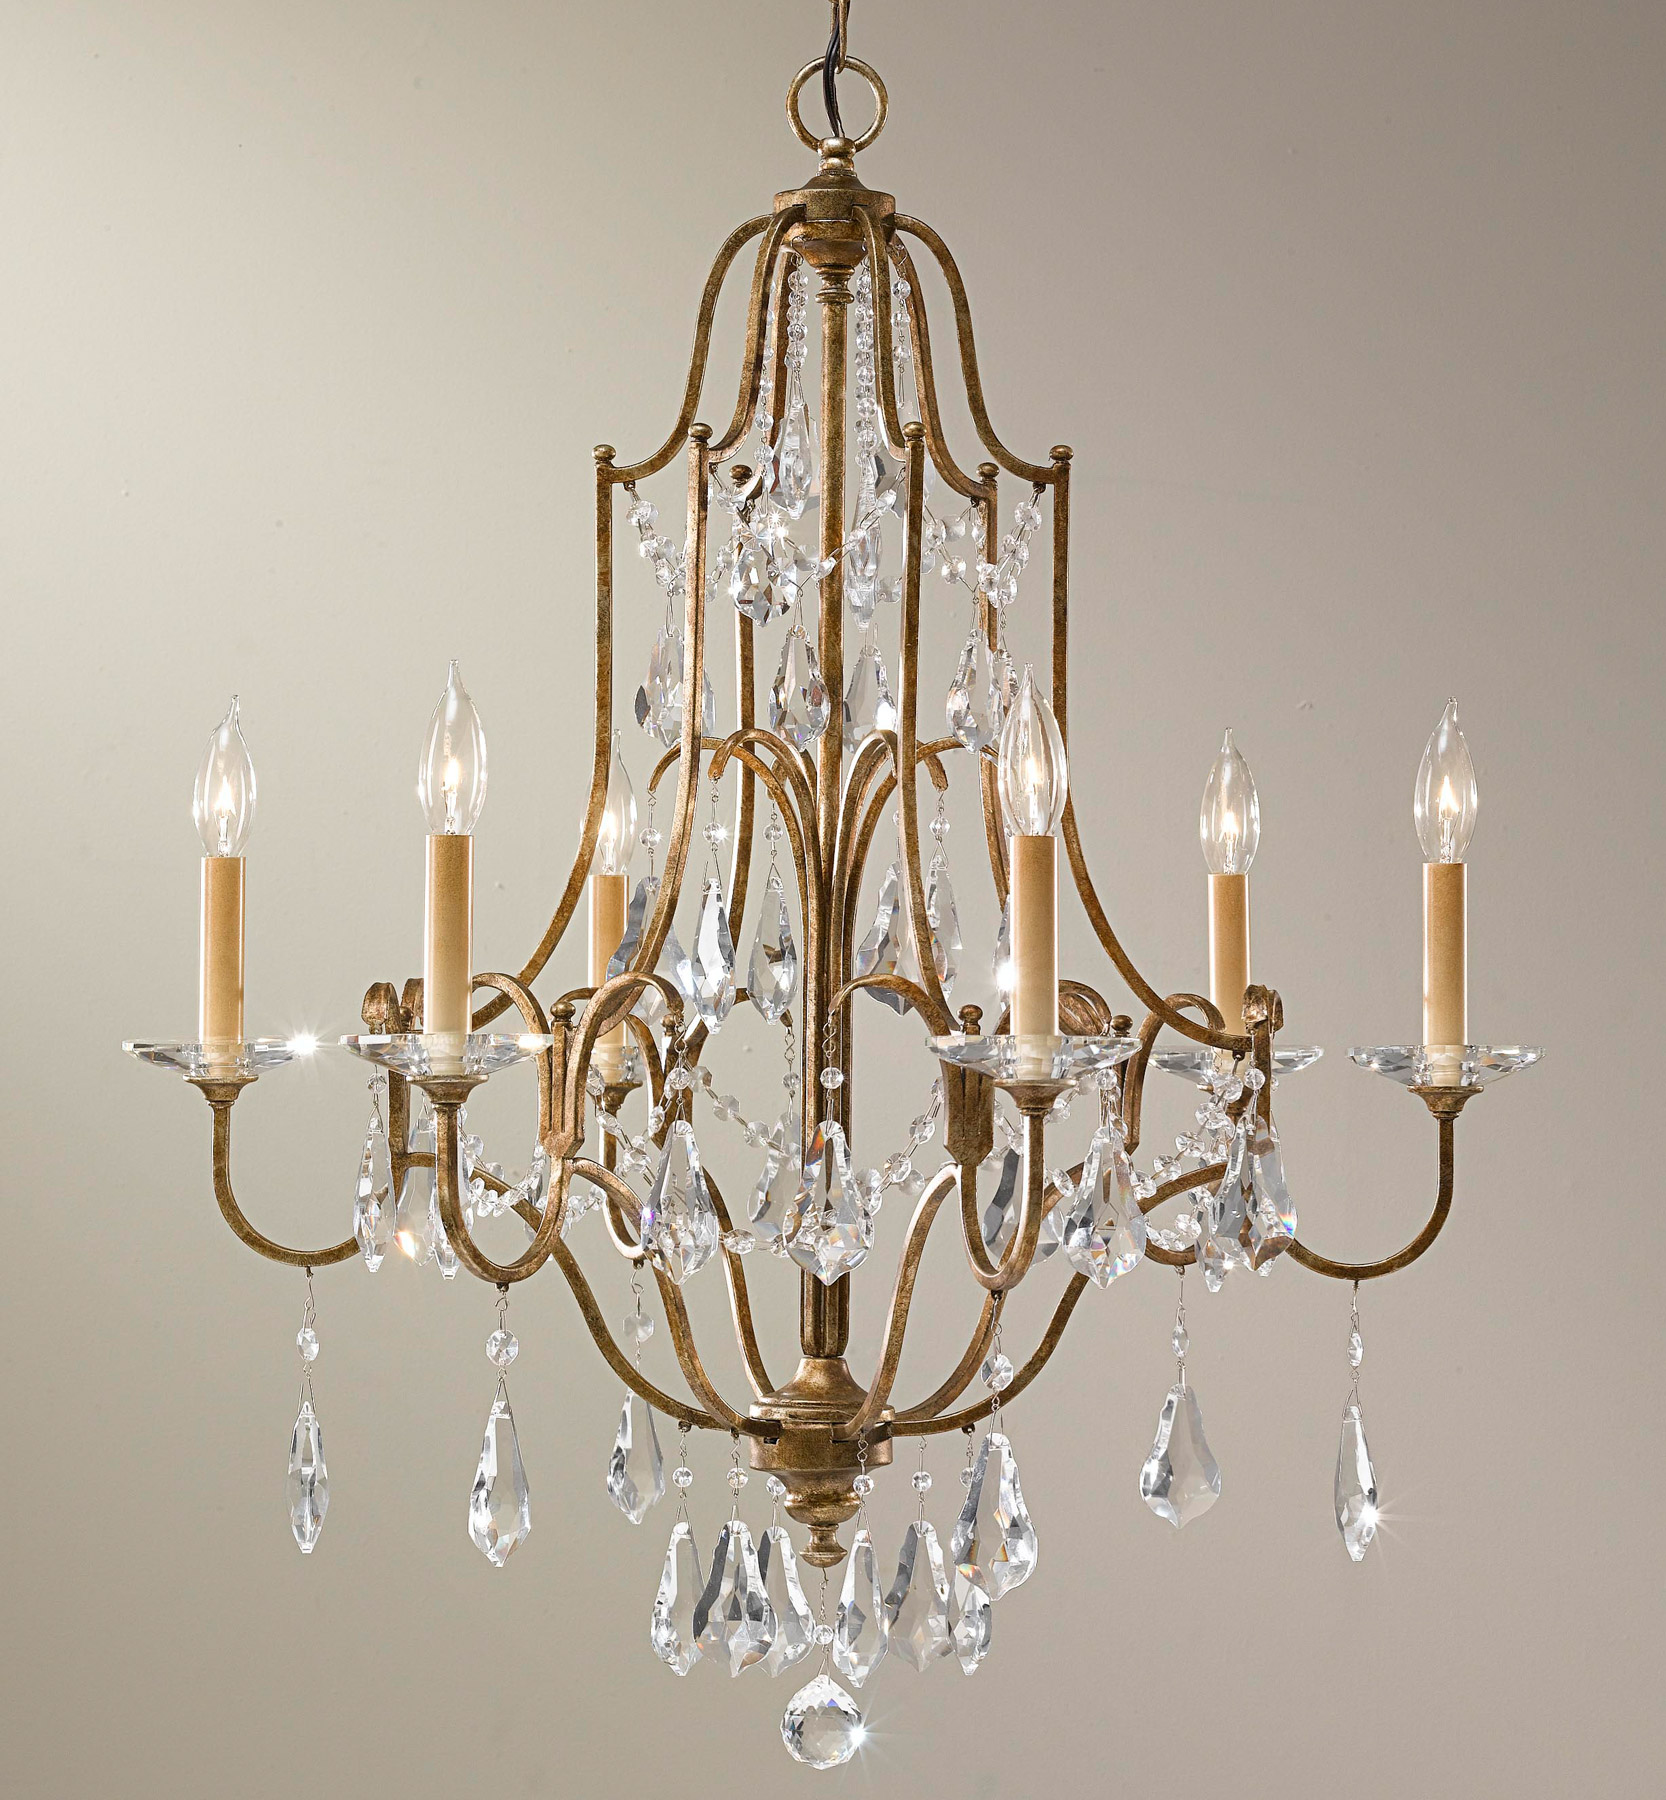 Murray Feiss F2478 6obz Crystal Valentina Six Light Chandelier